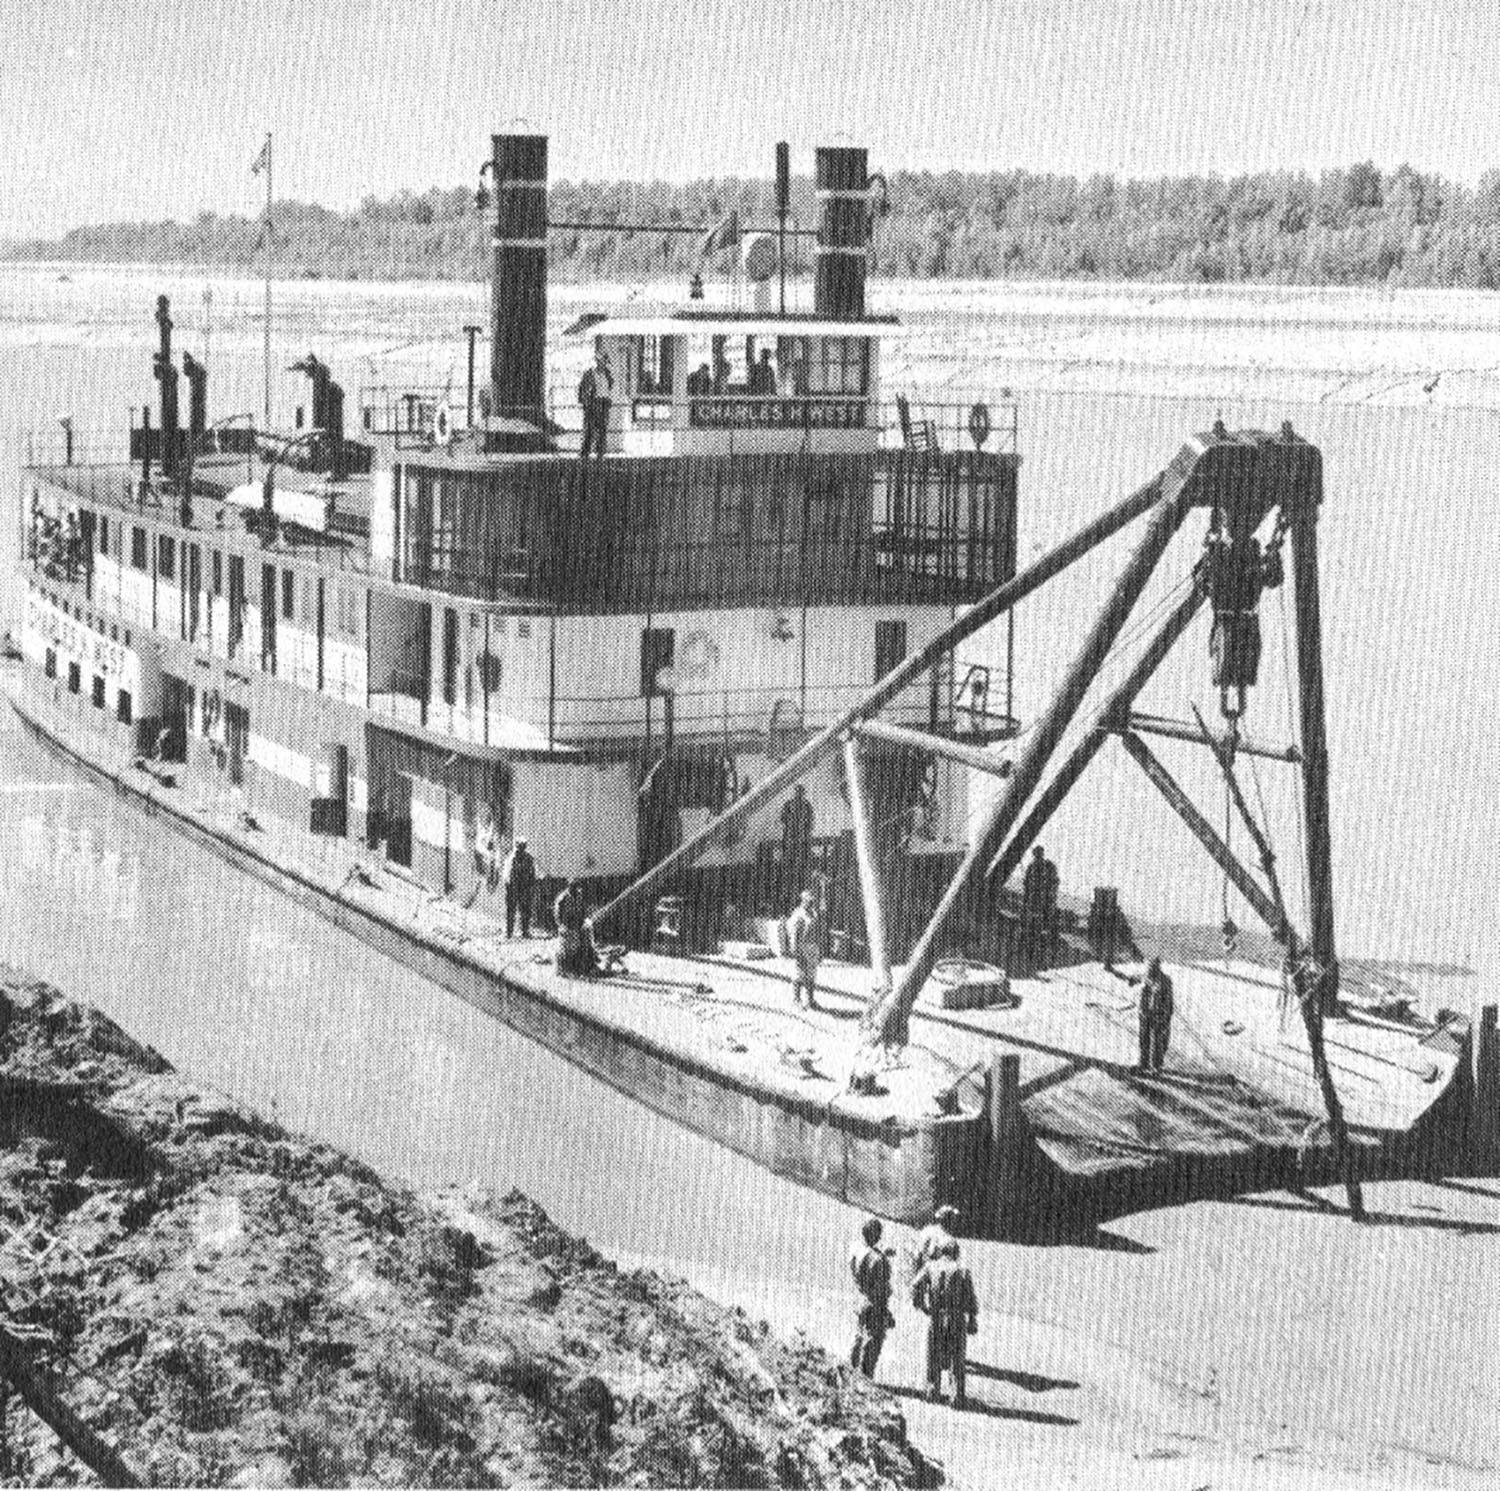 The Charles H. West on the Lower Mississippi River. (Keith Norrington collection)